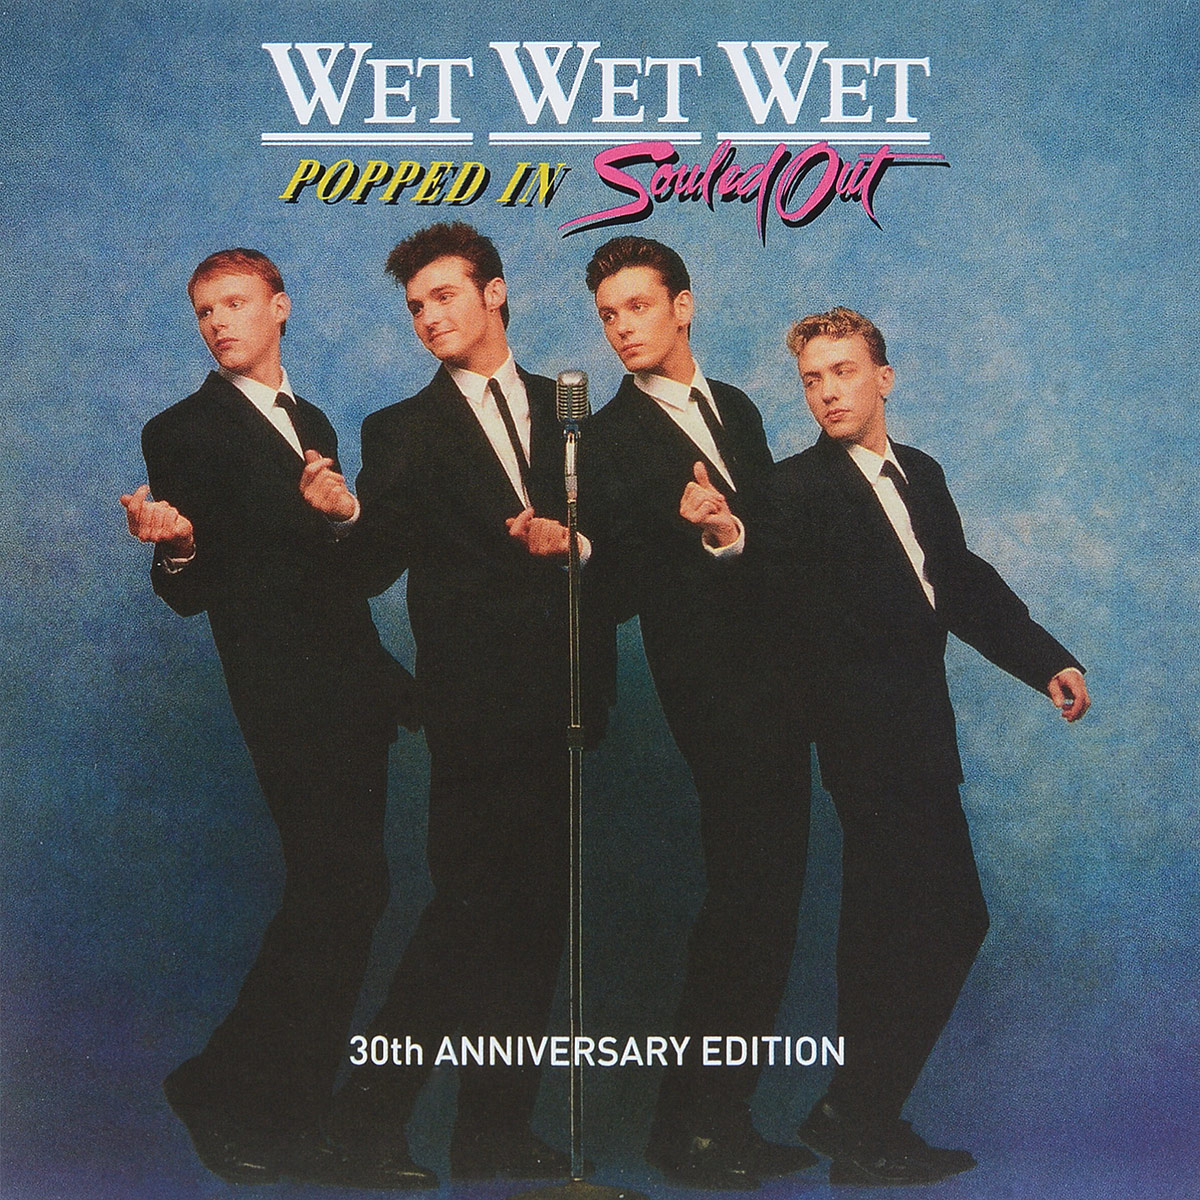 Wet Wet Wet Wet Wet Wet. Popped In Souled Out 30th Anniversary Edition wet